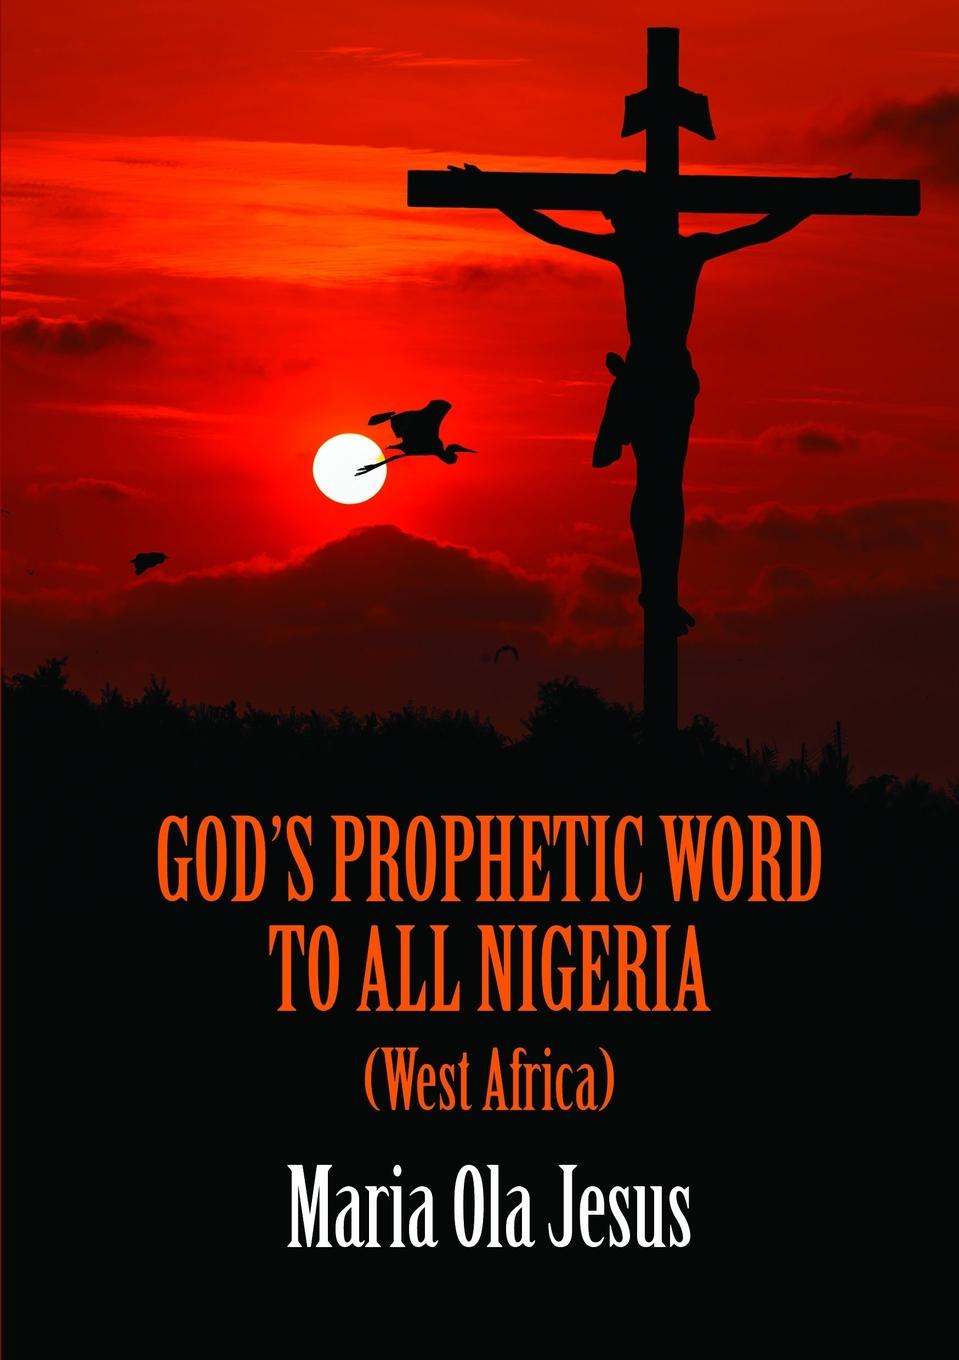 Maria Olajesus God.s Prophetic Word To All Nigeria (West-Africa) fqpf5n90 to 220f